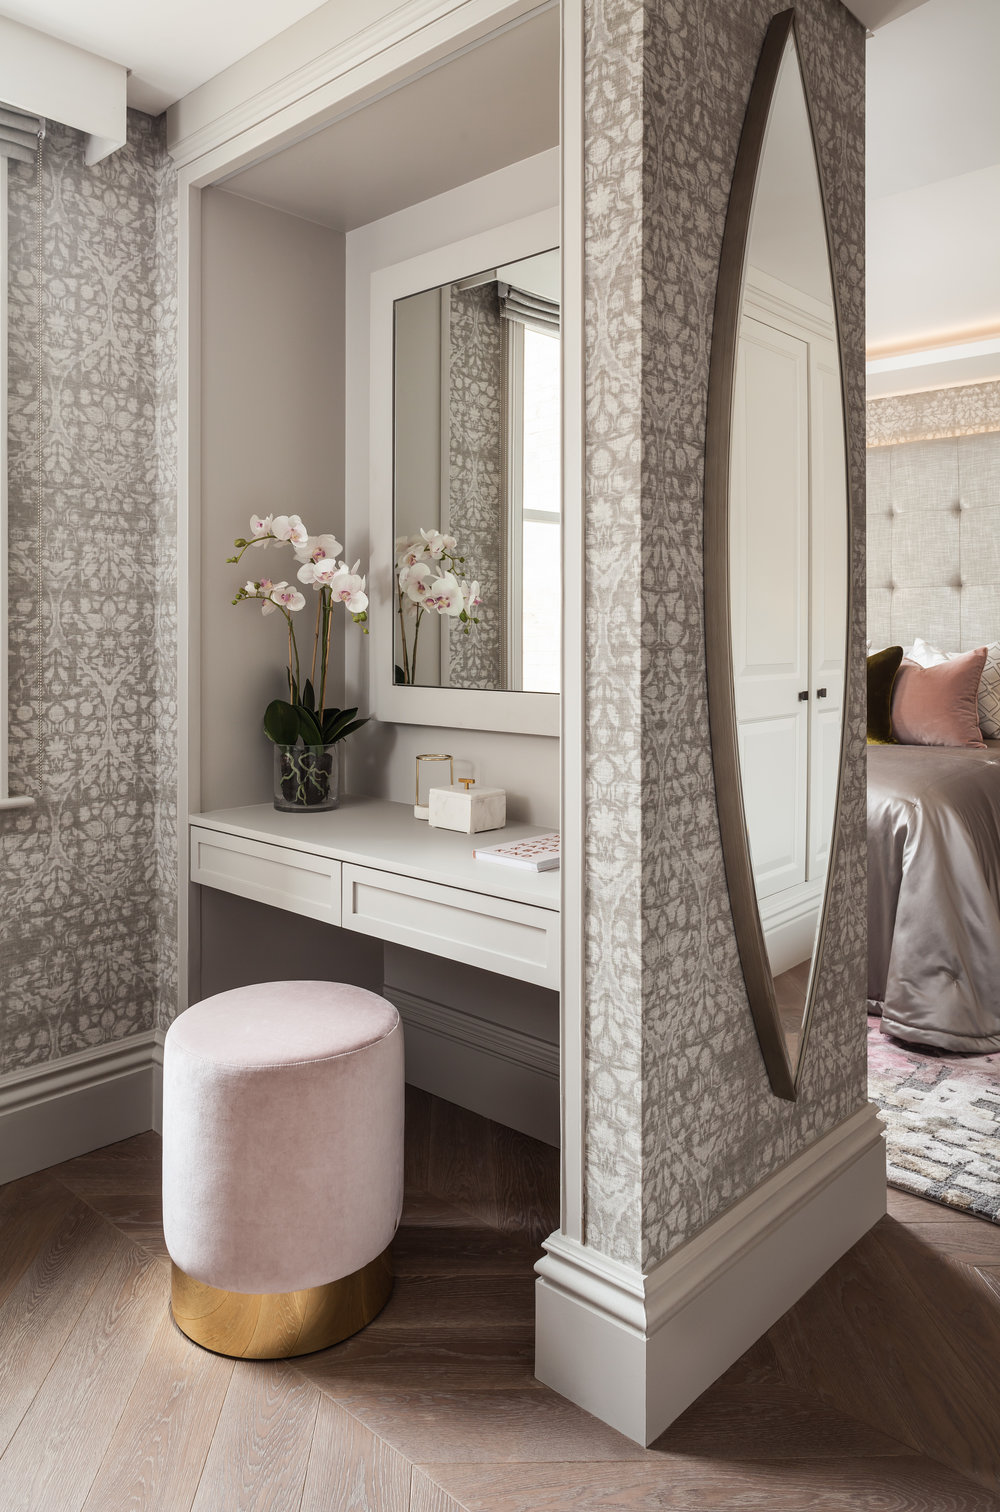 Jo Hamilton Interiors - Kensington bedroom dressing area